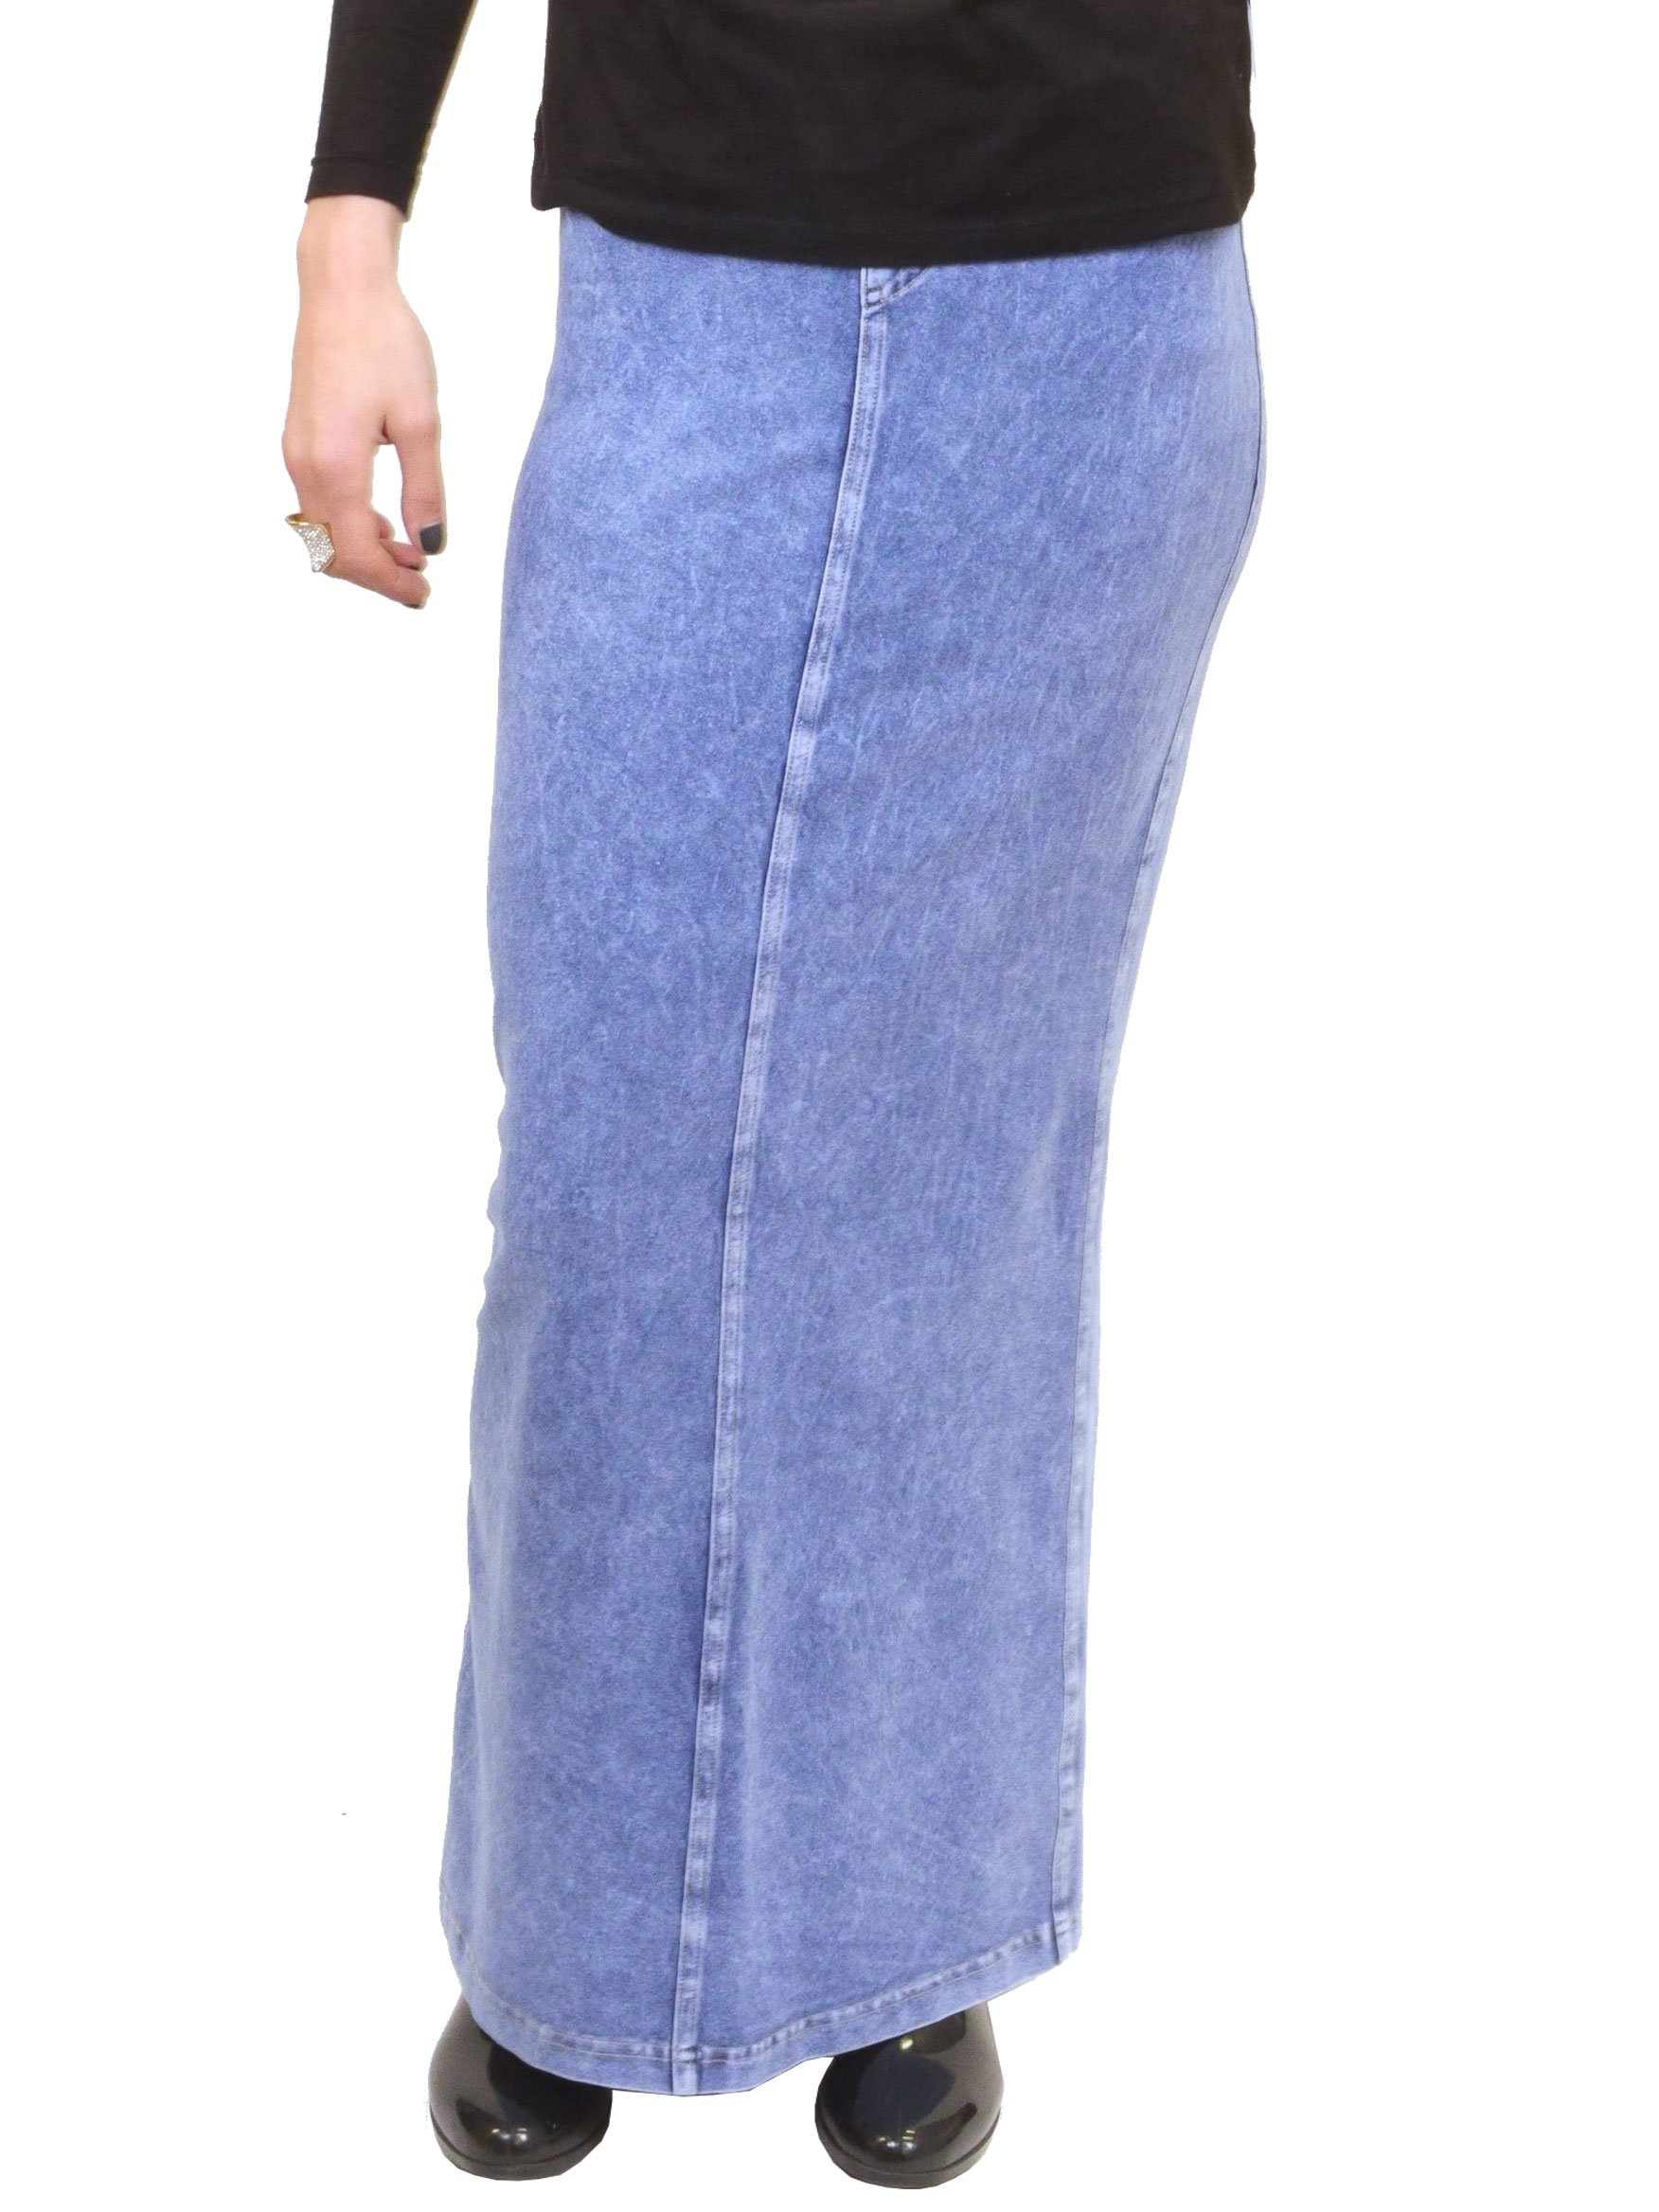 Long Denim Skirt (L, Light)